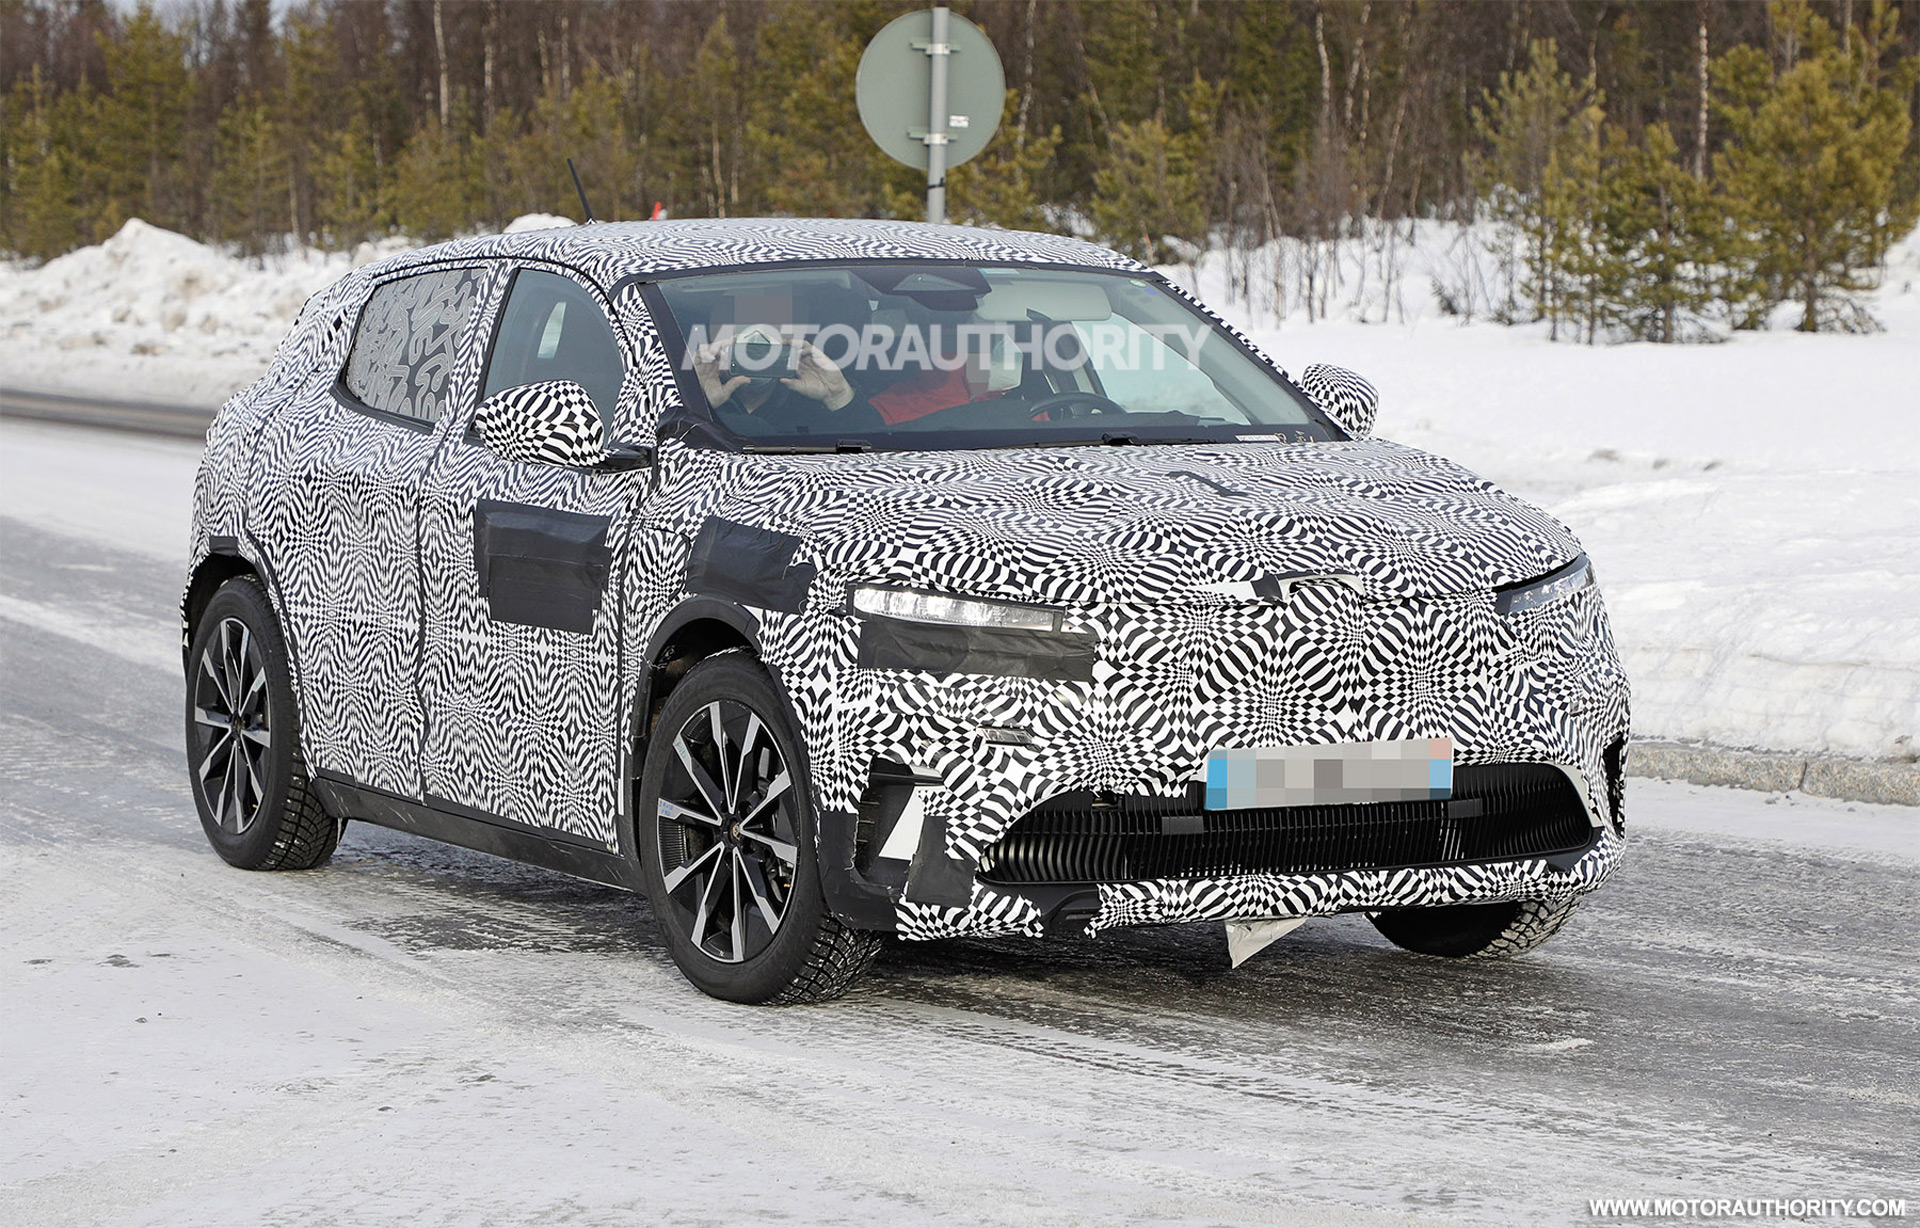 2022 Renault Megane E-Tech Electric spy shots: Nissan Ariya's French cousin due in 2022